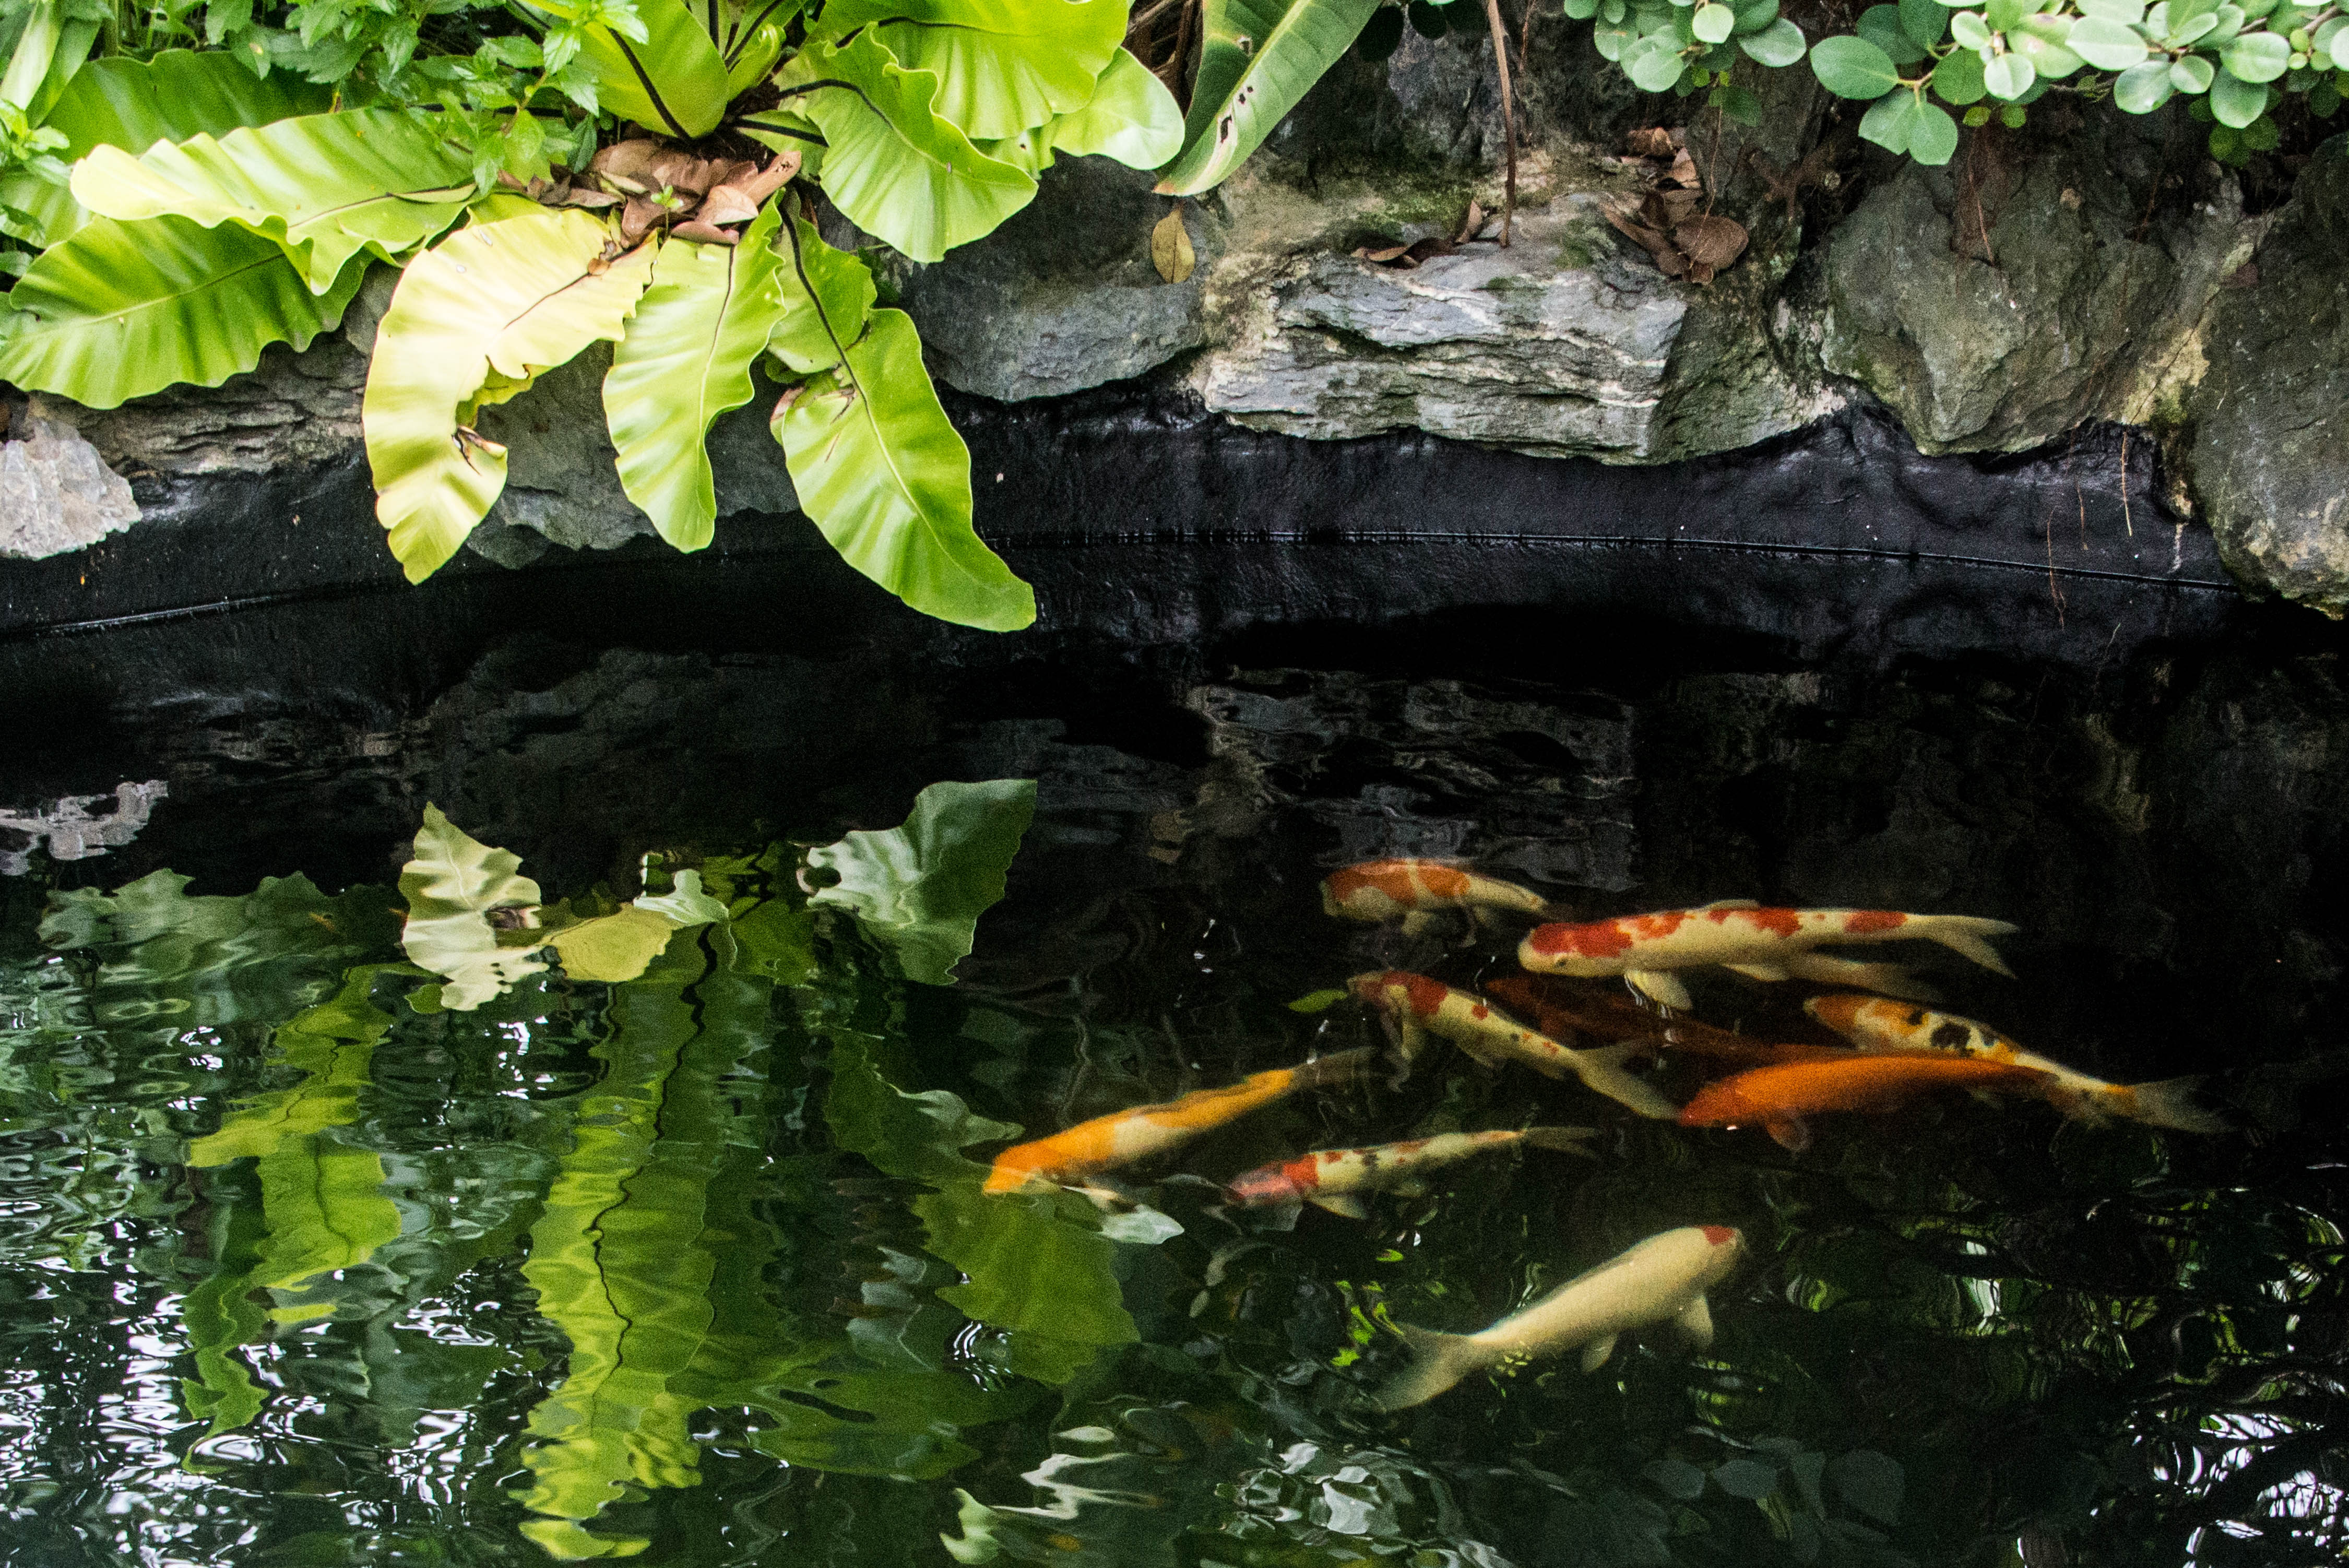 Koi pond basics 101 what you need to know for What do you need for a koi pond